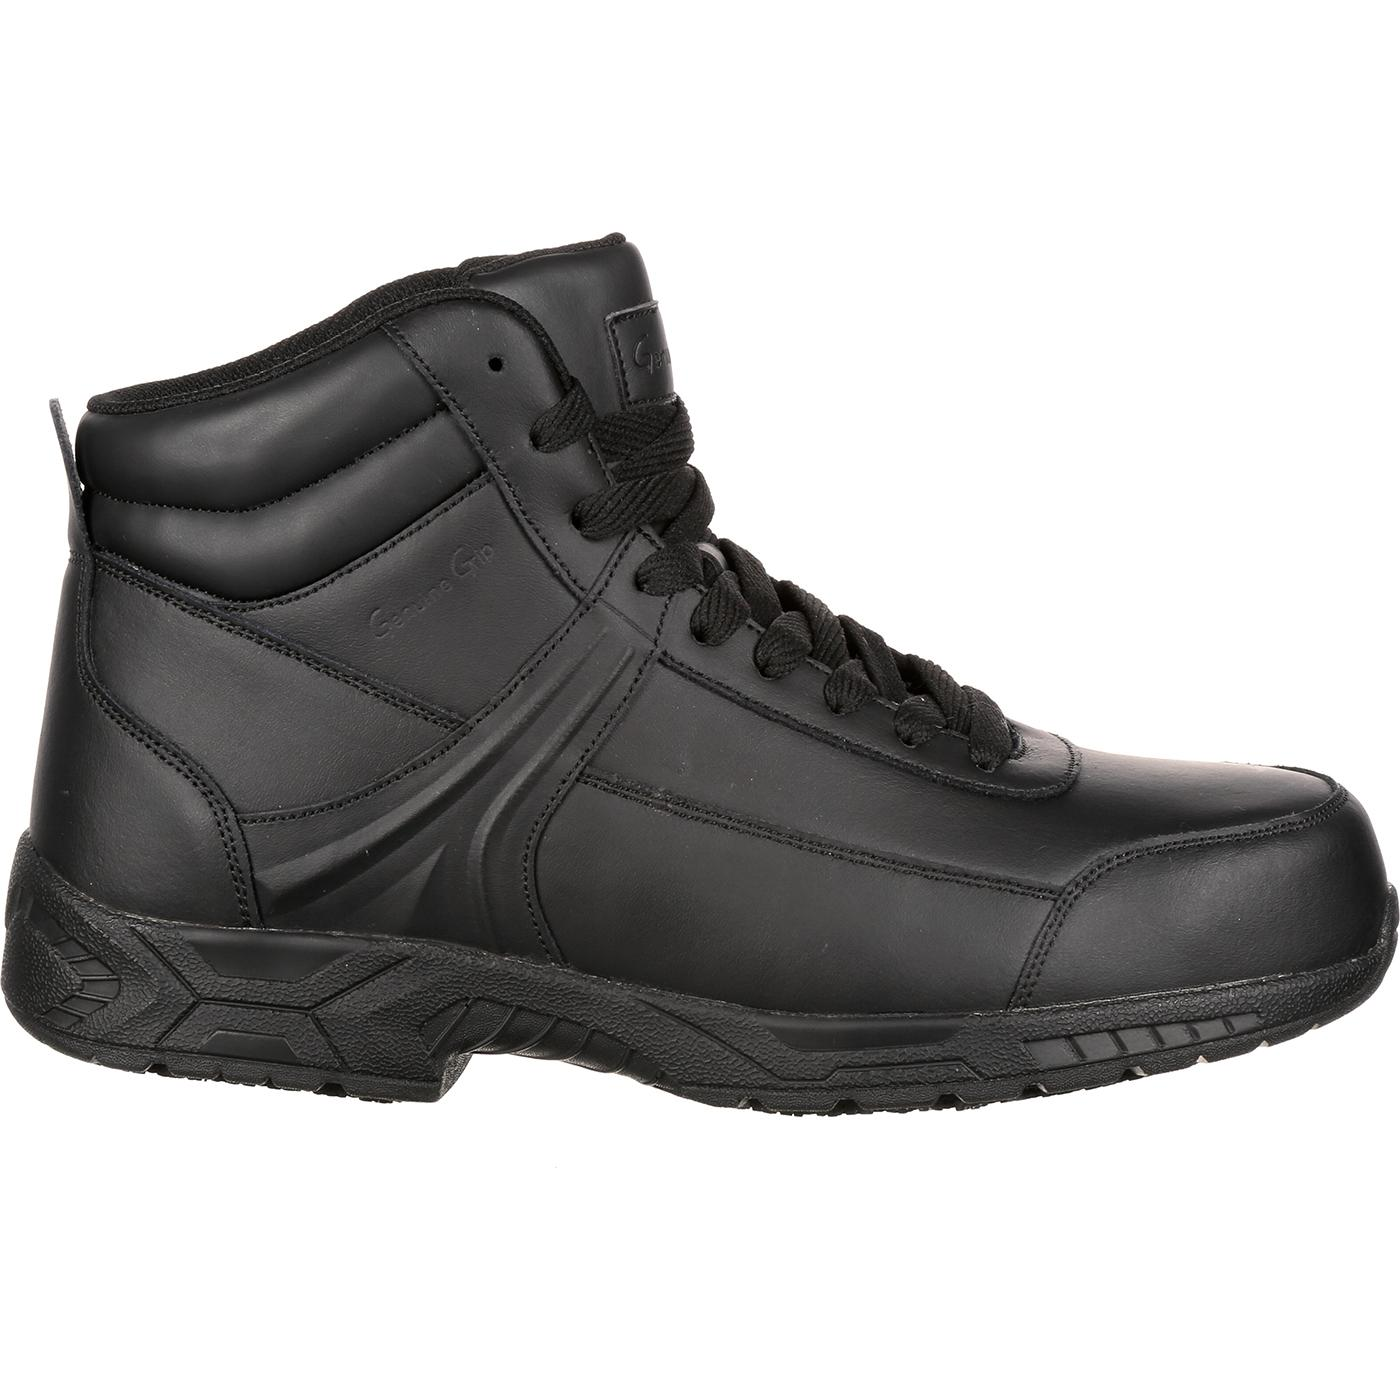 Images. Genuine Grip Unisex Steel Toe Athletic High-Top Work Shoe ... 4640b0c46e7e